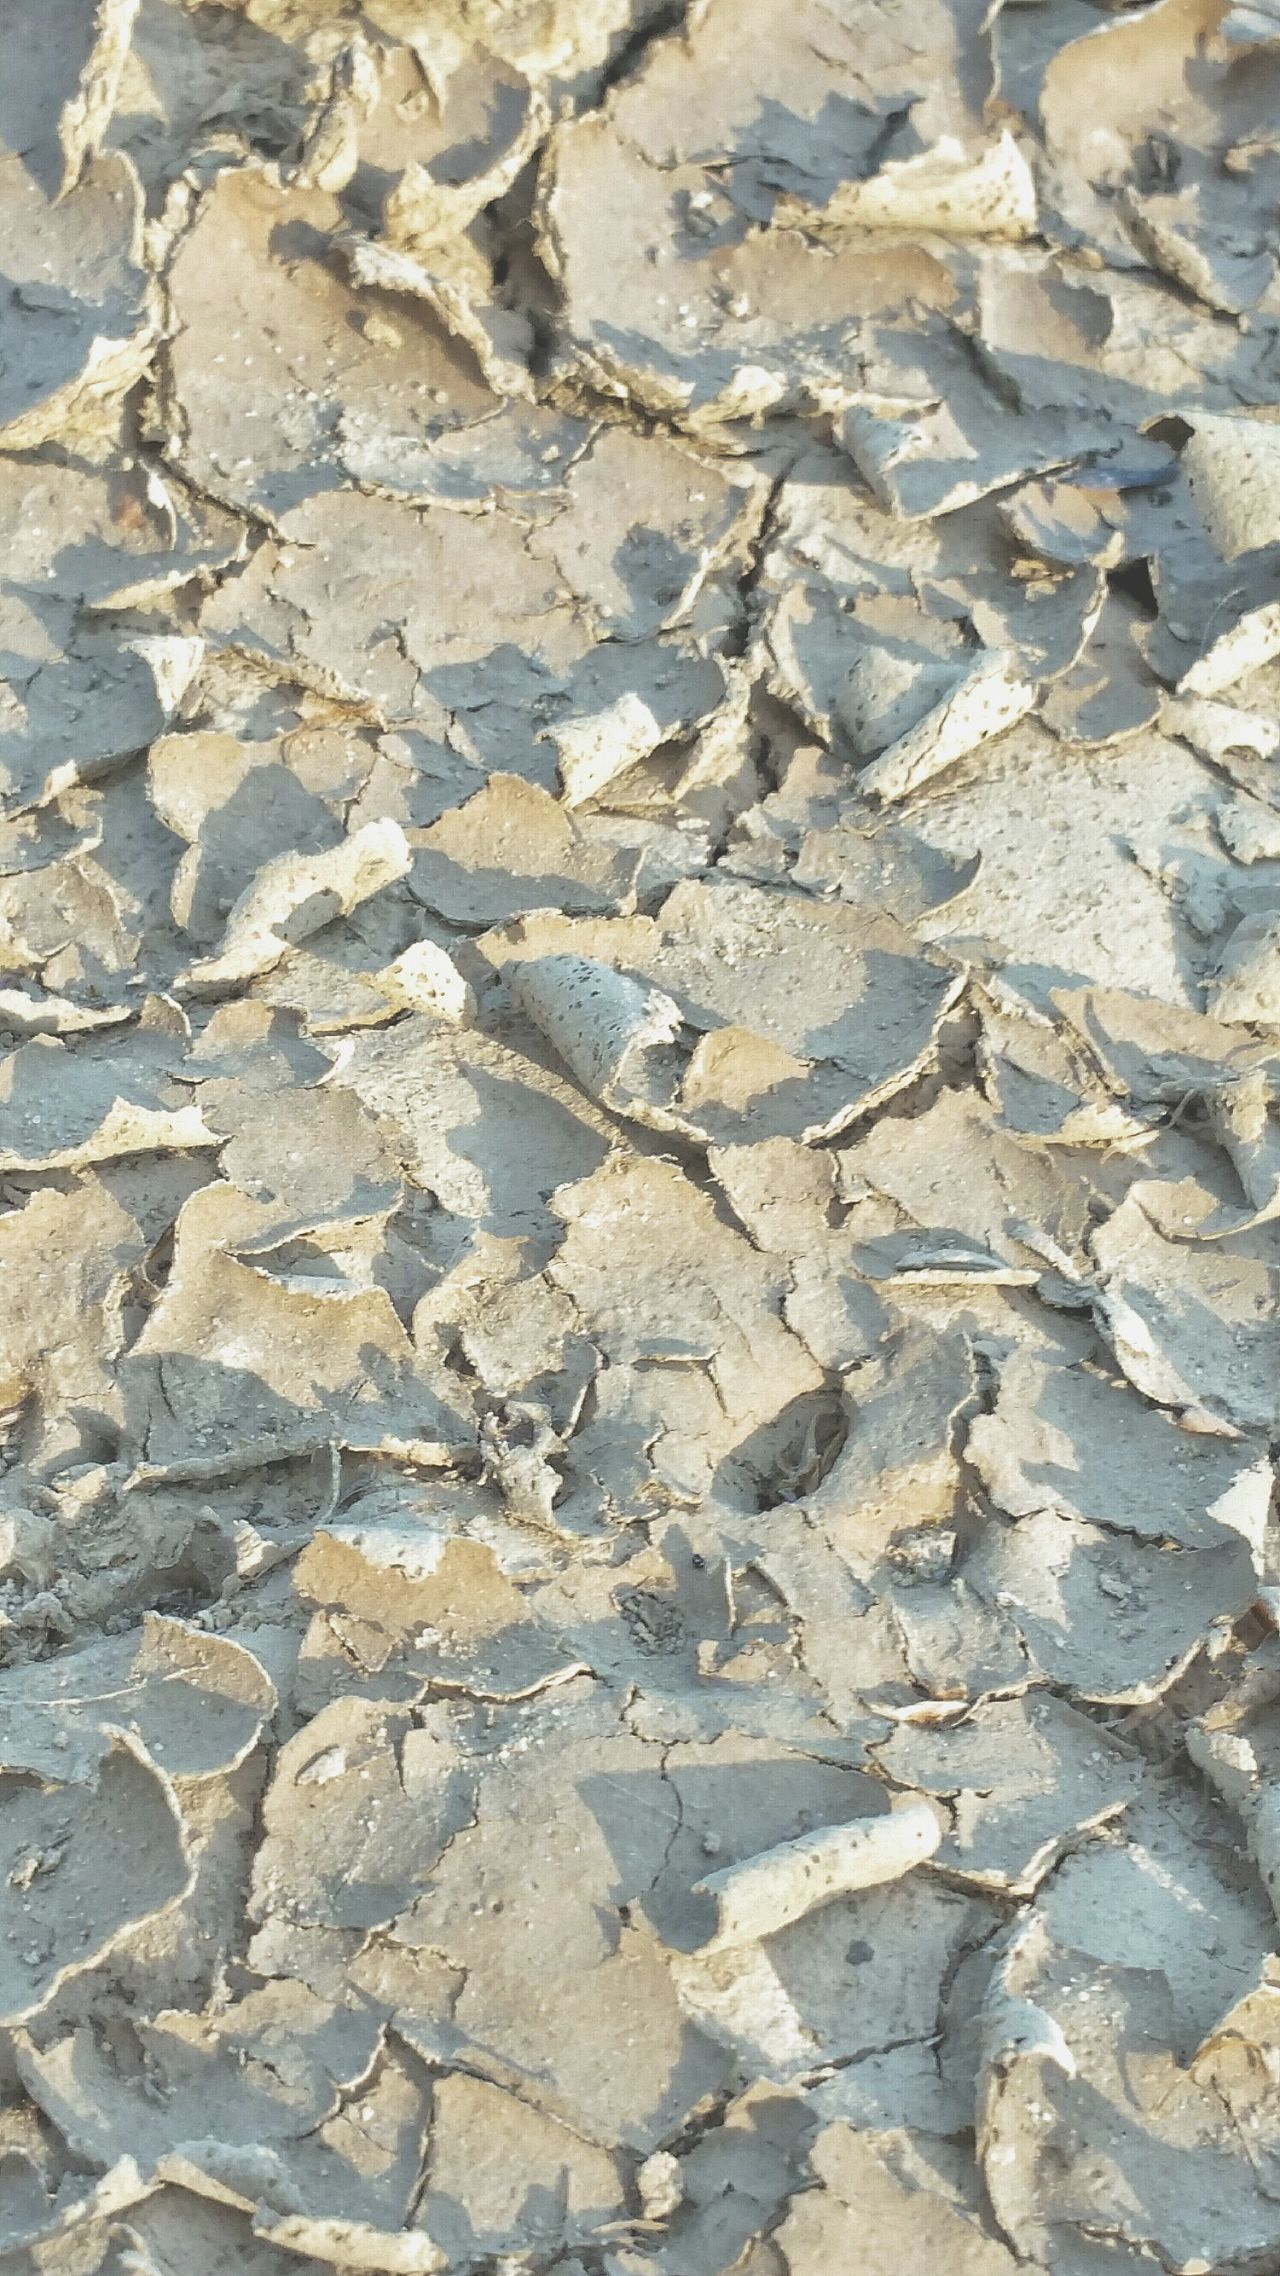 Full Frame High Angle View Sunlight Backgrounds Day Nature No People Outdoors Close-up Paw Print Dirt Mud Cracks Cracks In The Earth Curled Up Dried Mud Shapes And Forms Pattern Patterns In Nature Earth Dried Up Shapes And Design Lights And Shadows Lines And Shapes Textures